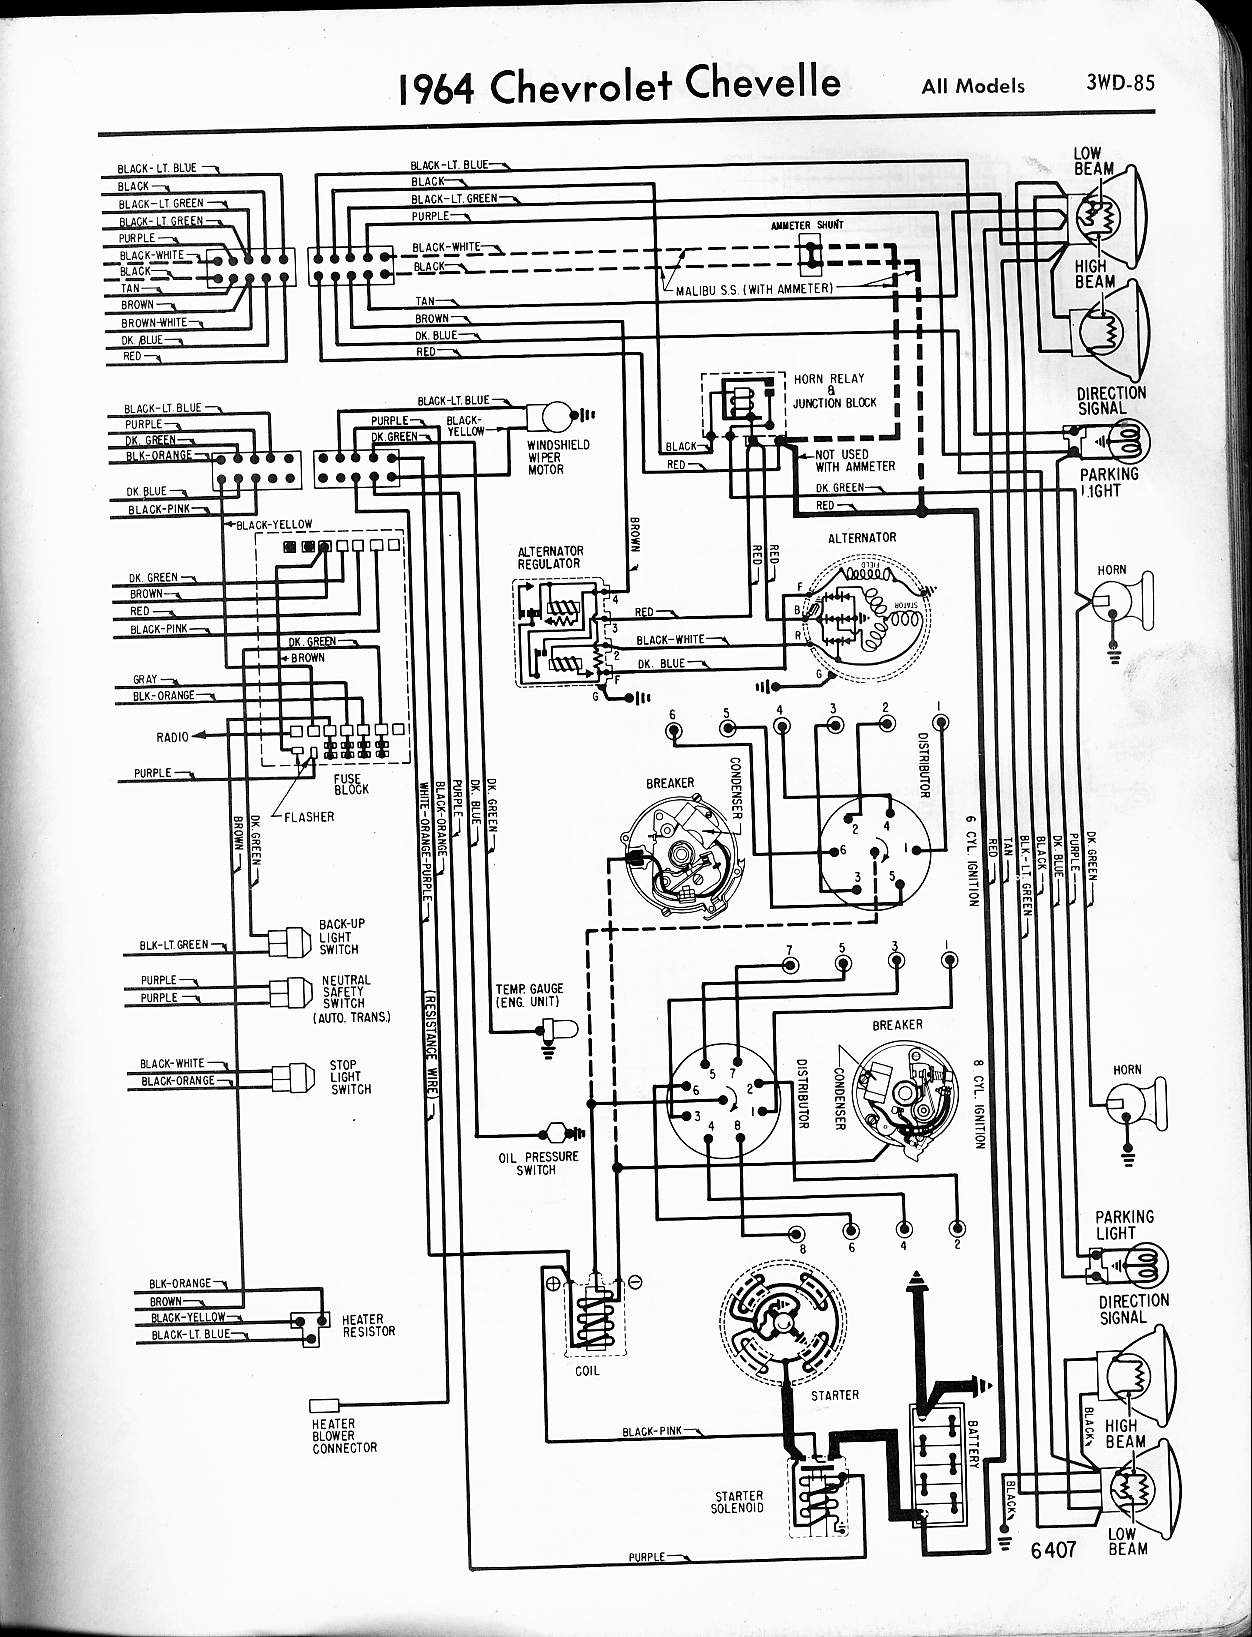 71 Chevelle Wiring Diagram Ignition System Will Be 1971 Dodge Chevy Diagrams Rh Wizard Com 1966 Dash